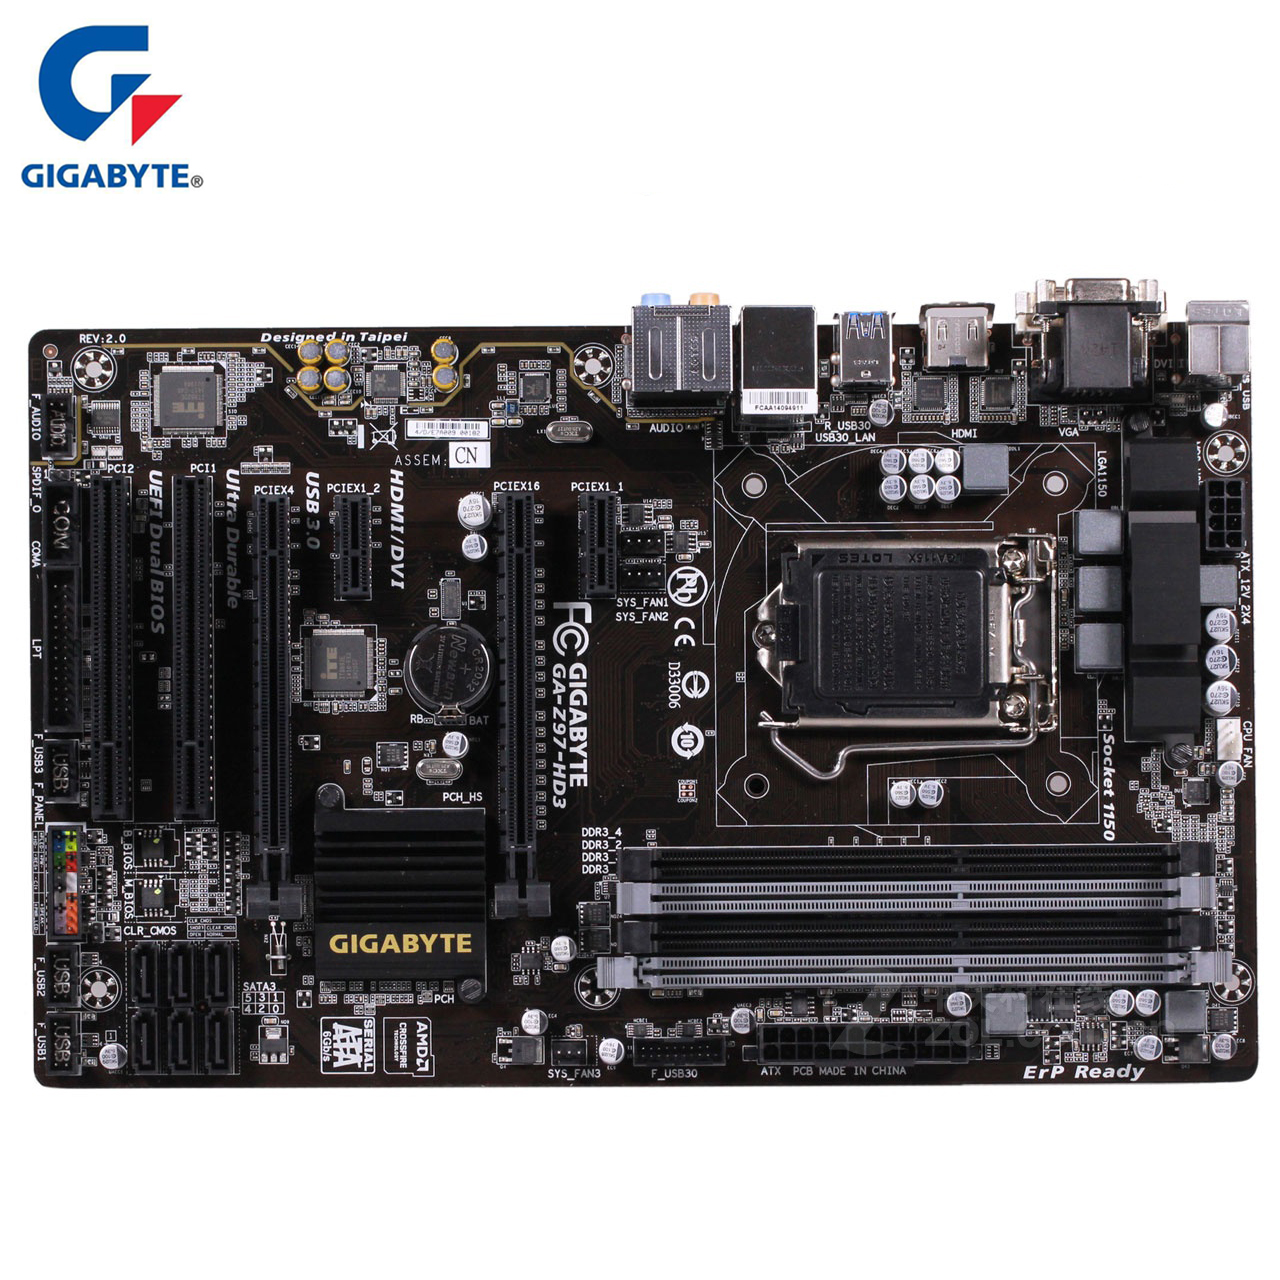 Gigabyte GA-Z97-HD3 100% Original Motherboard LGA1150 DDR3 USB3.0 32G Z97 Z97-HD3 Desktop Mainboard SATA III Mother Board Used